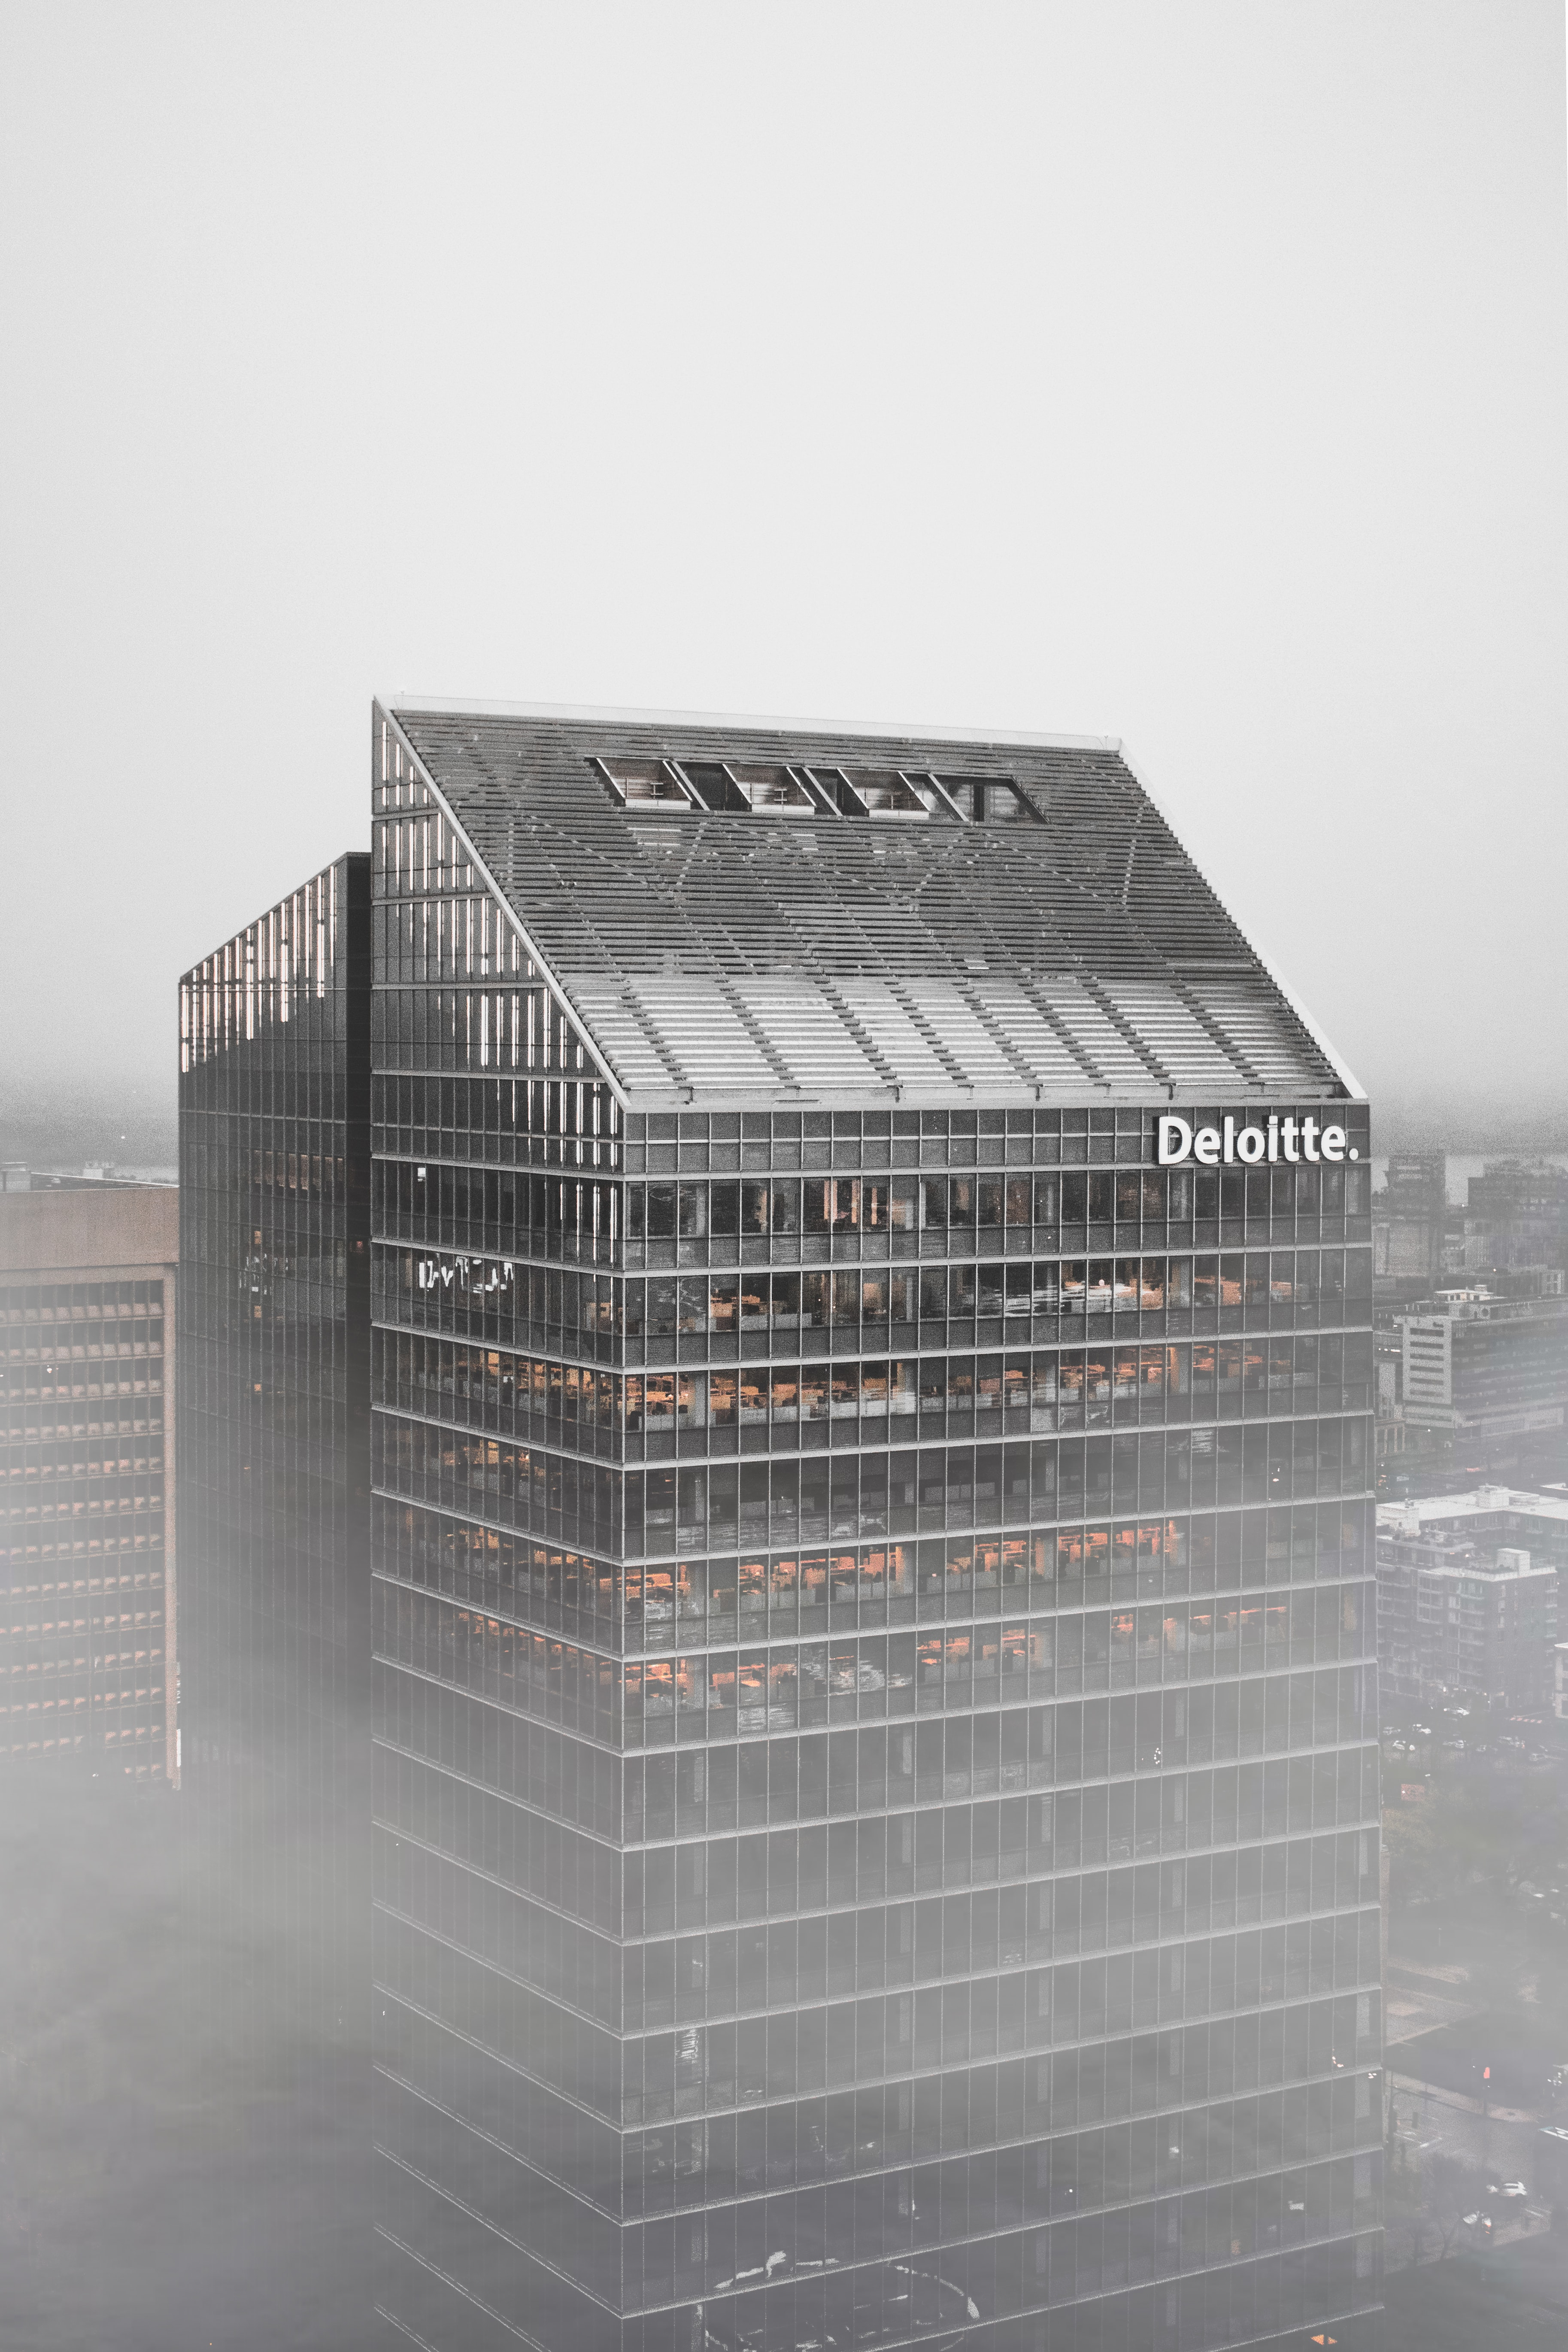 gray Deloitte building during daytime